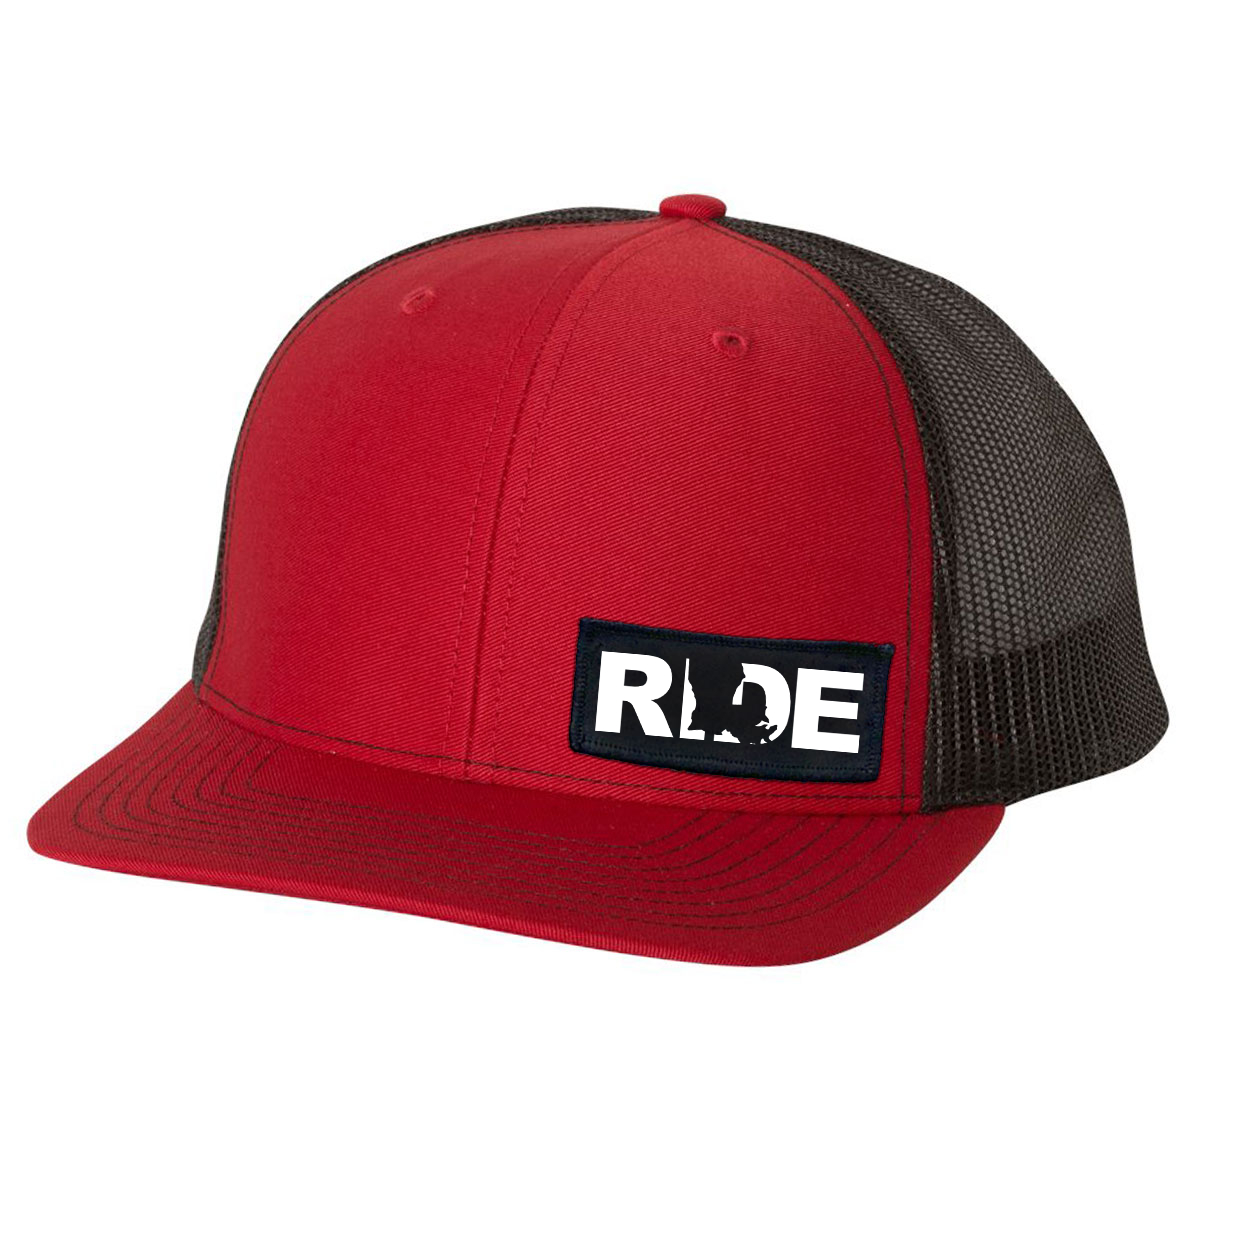 Ride Louisiana Night Out Woven Patch Snapback Trucker Hat Red/Black (White Logo)